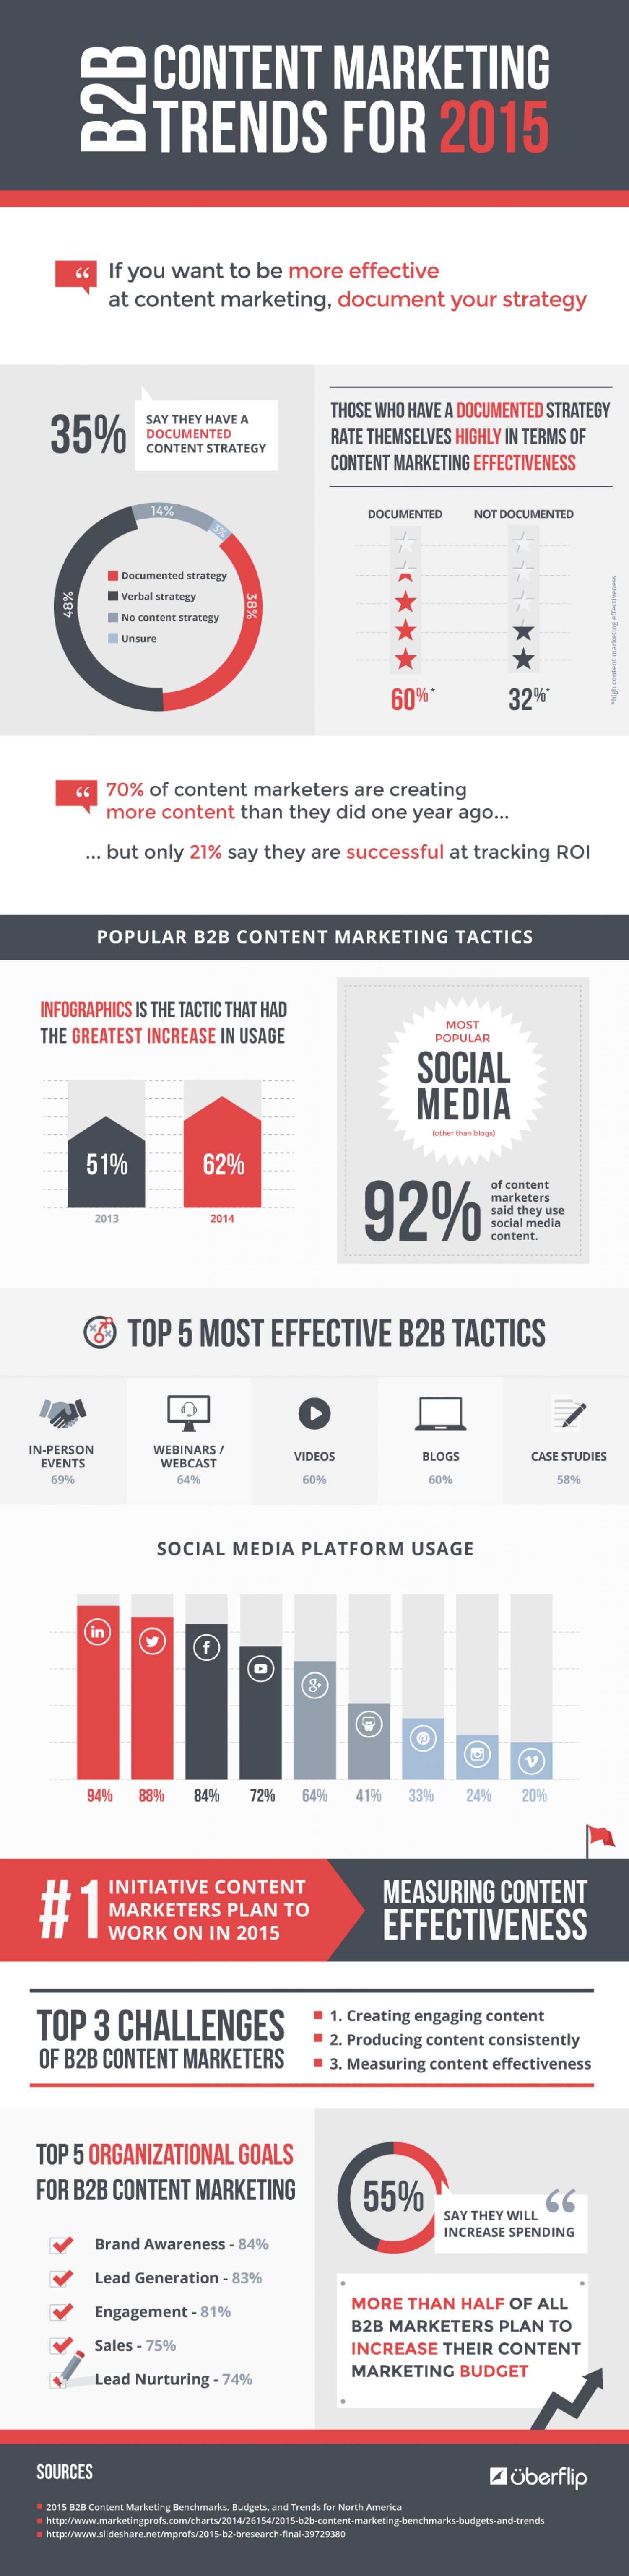 B2B Content Marketing Trends for 2015 Infographic